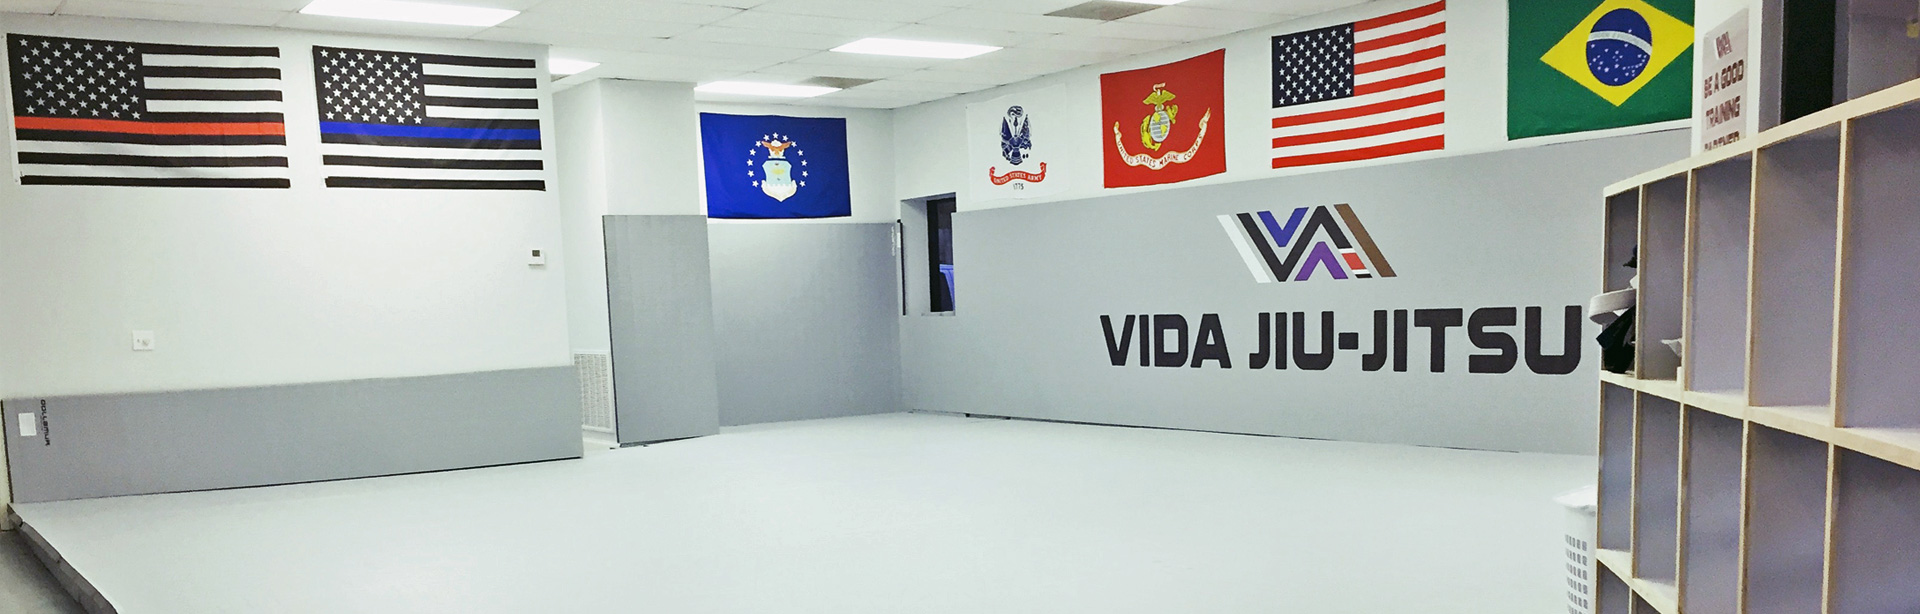 Vida Brazilian Jiu-jitsu Contact